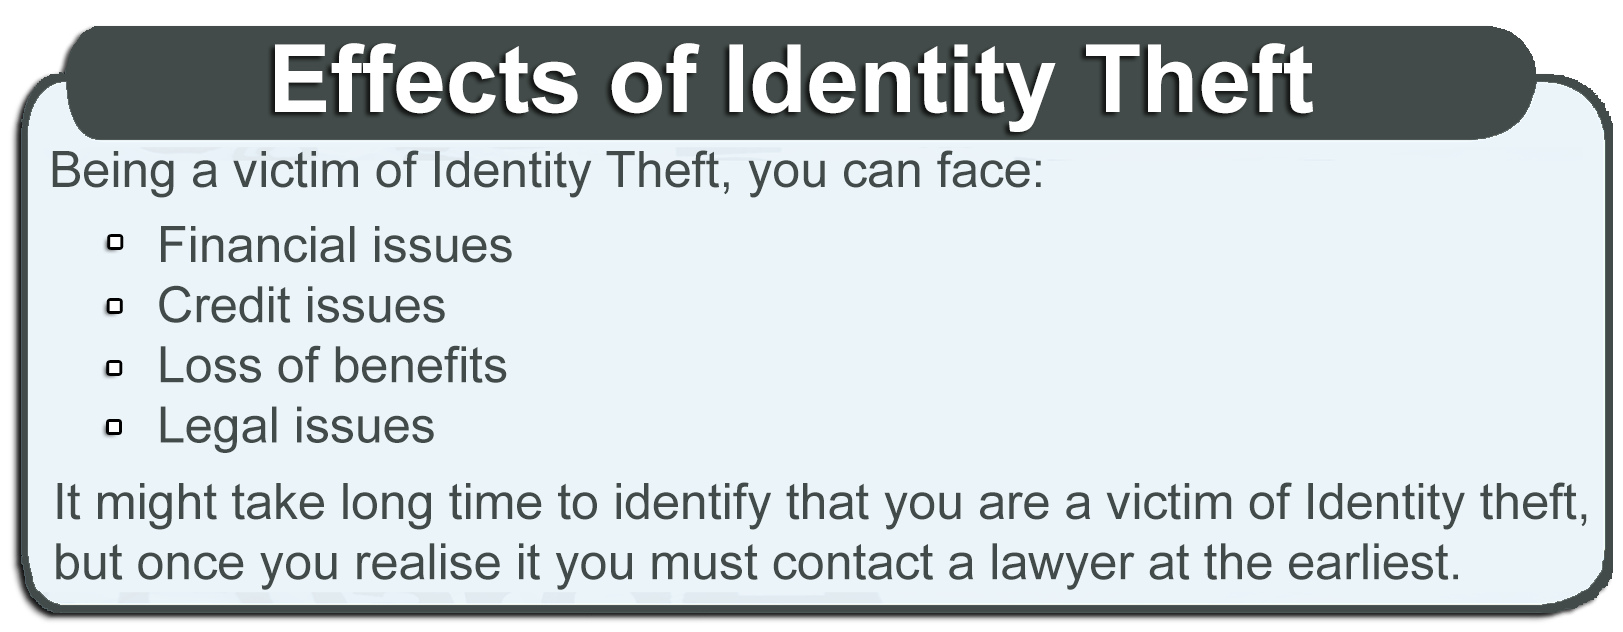 Effects of identity theft